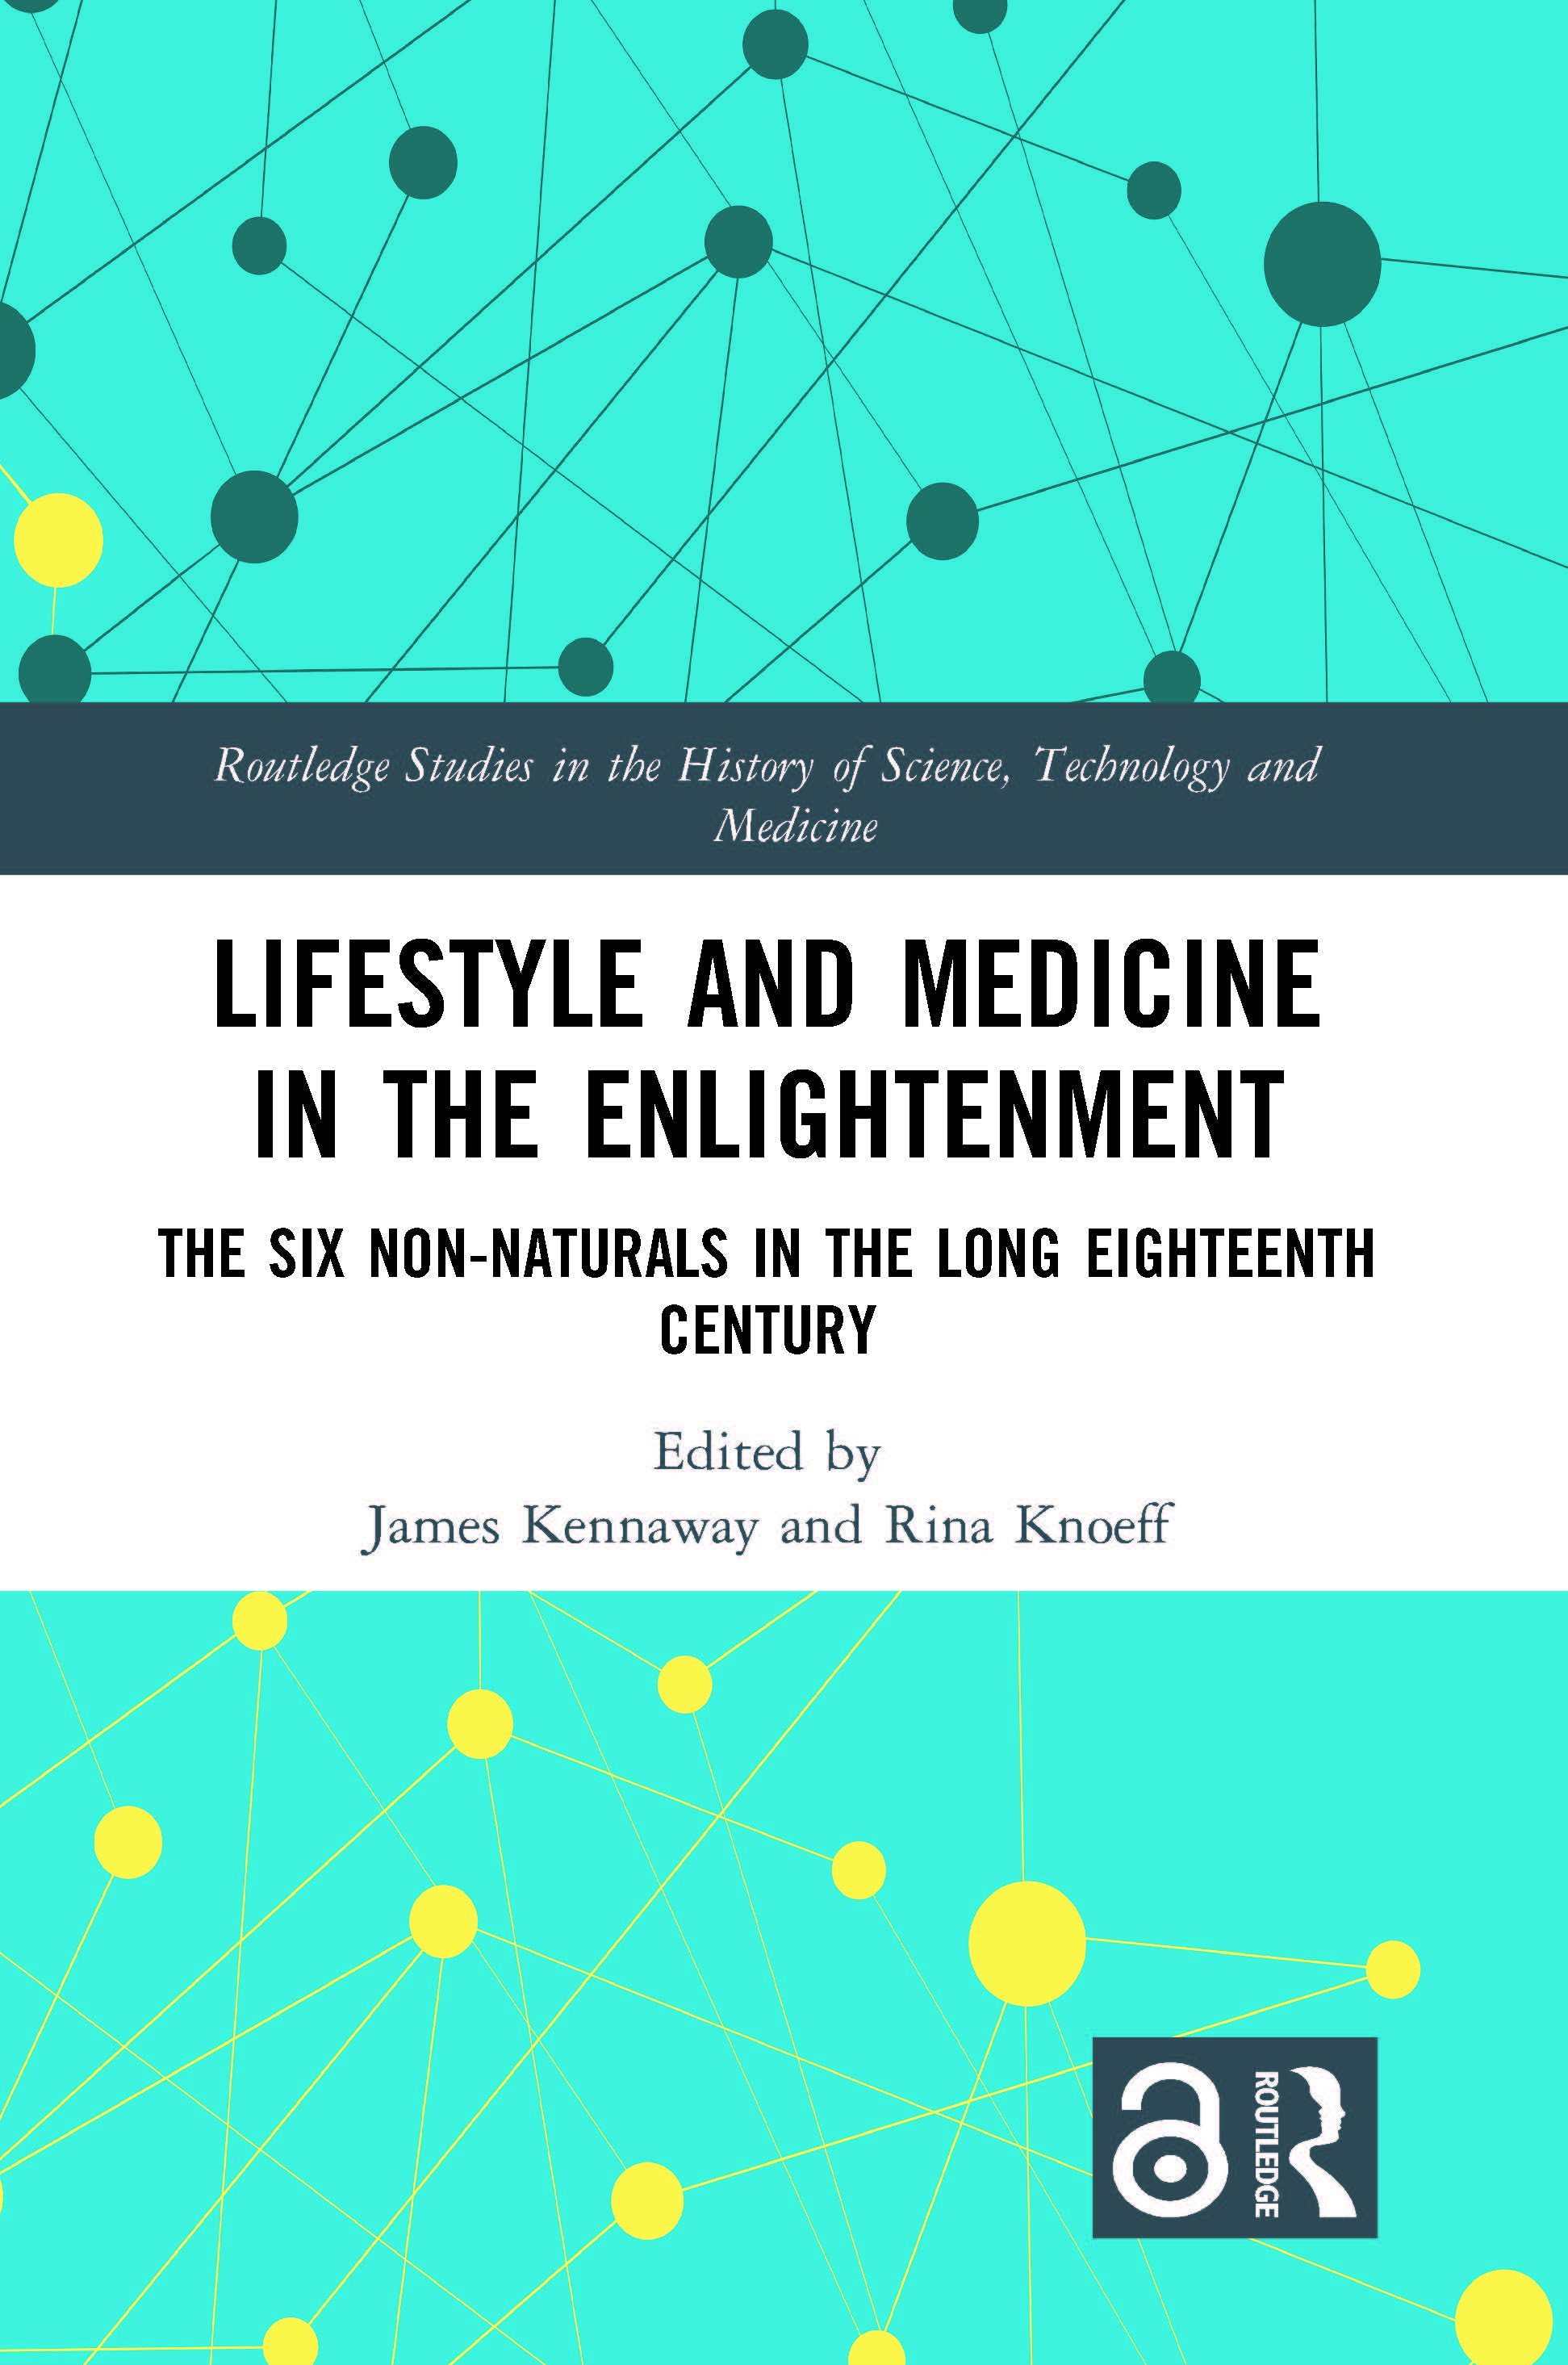 Lifestyle and Medicine in the Enlightenment: The Six Non-Naturals in the Long Eighteenth Century book cover